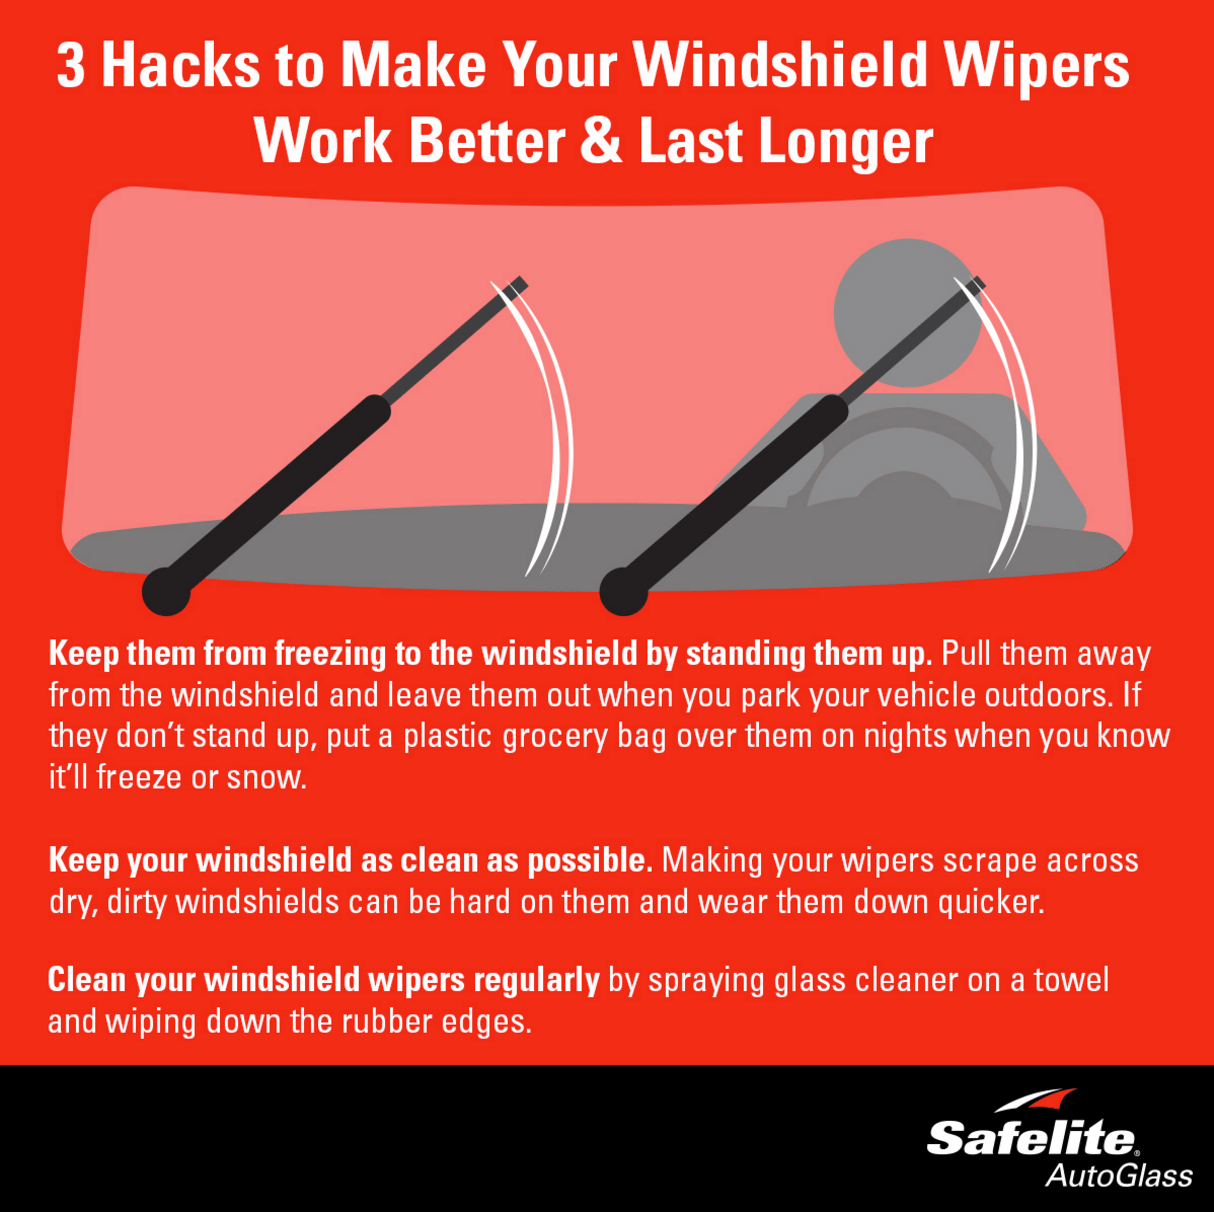 Make your windshield wipers last longer